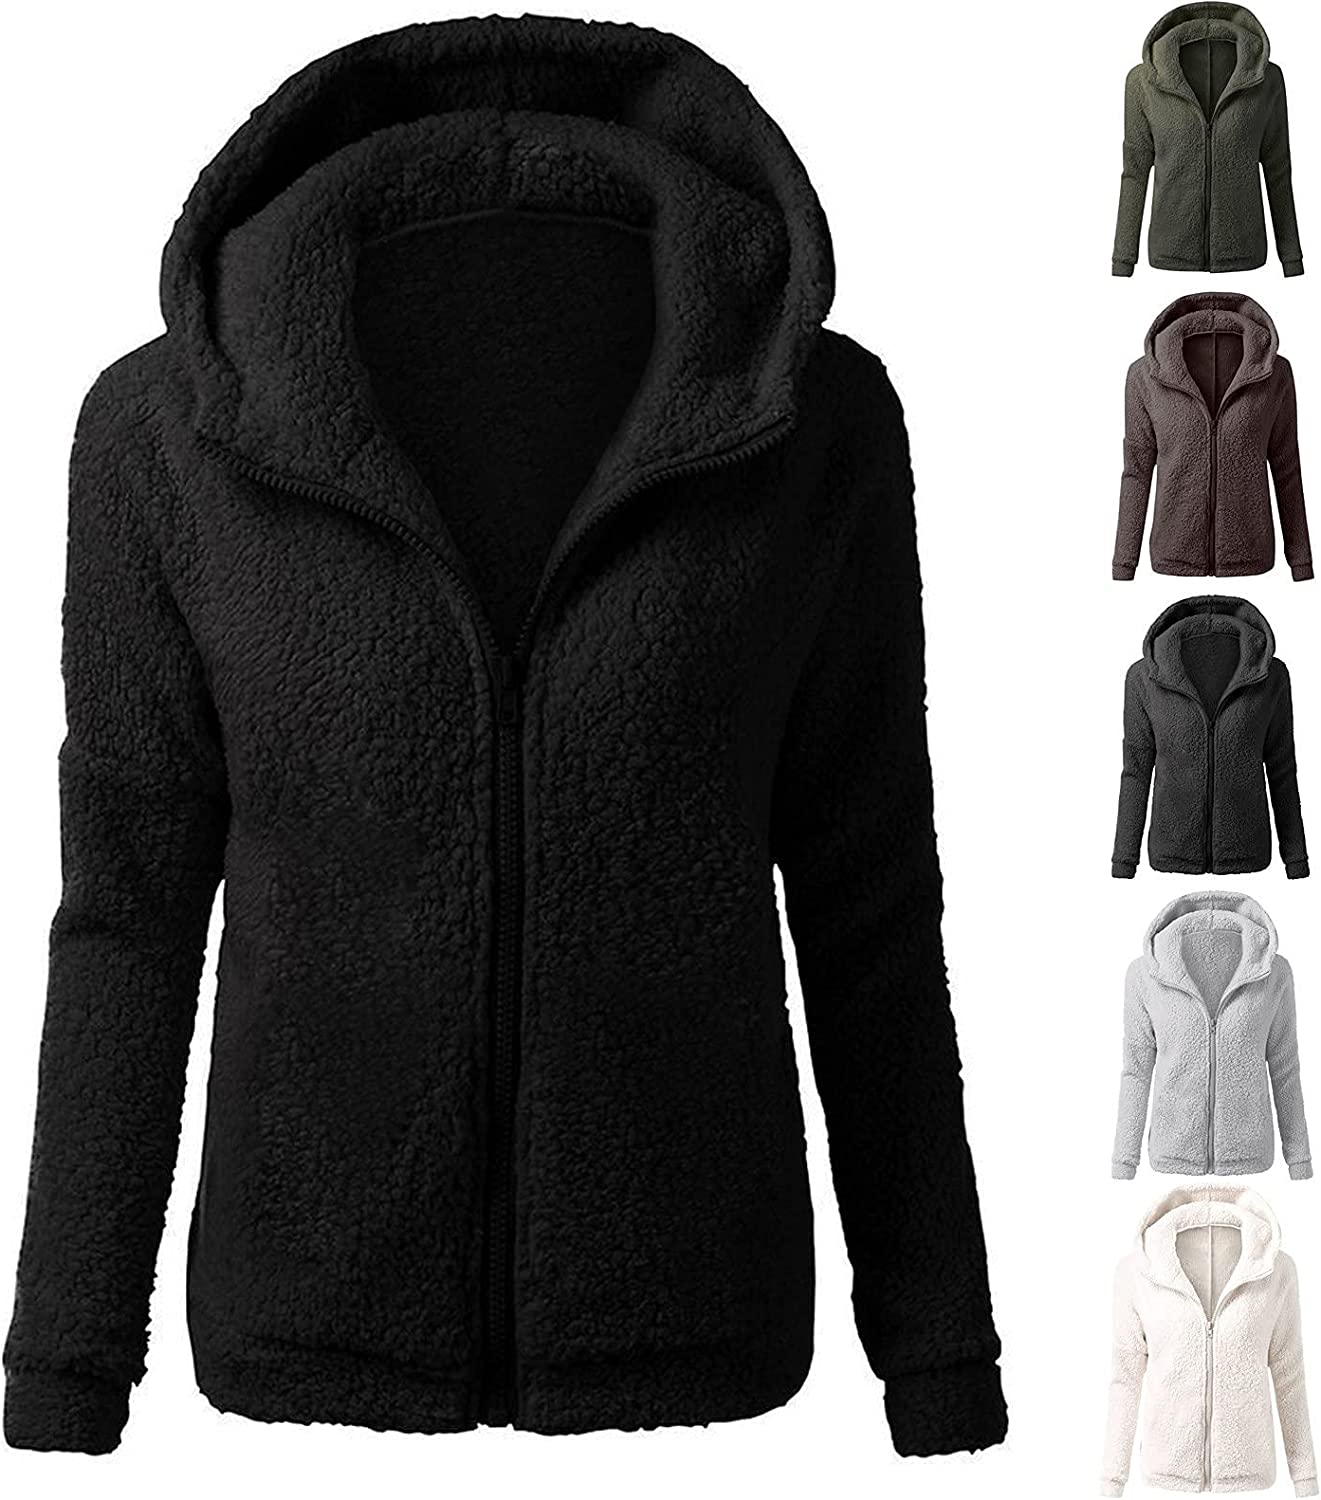 Women's Tops Autumn And Winter Ladies Fashion Solid Color Casual Wool Zipper Cardigan Jacket Warm Long Sleeve Hoodie